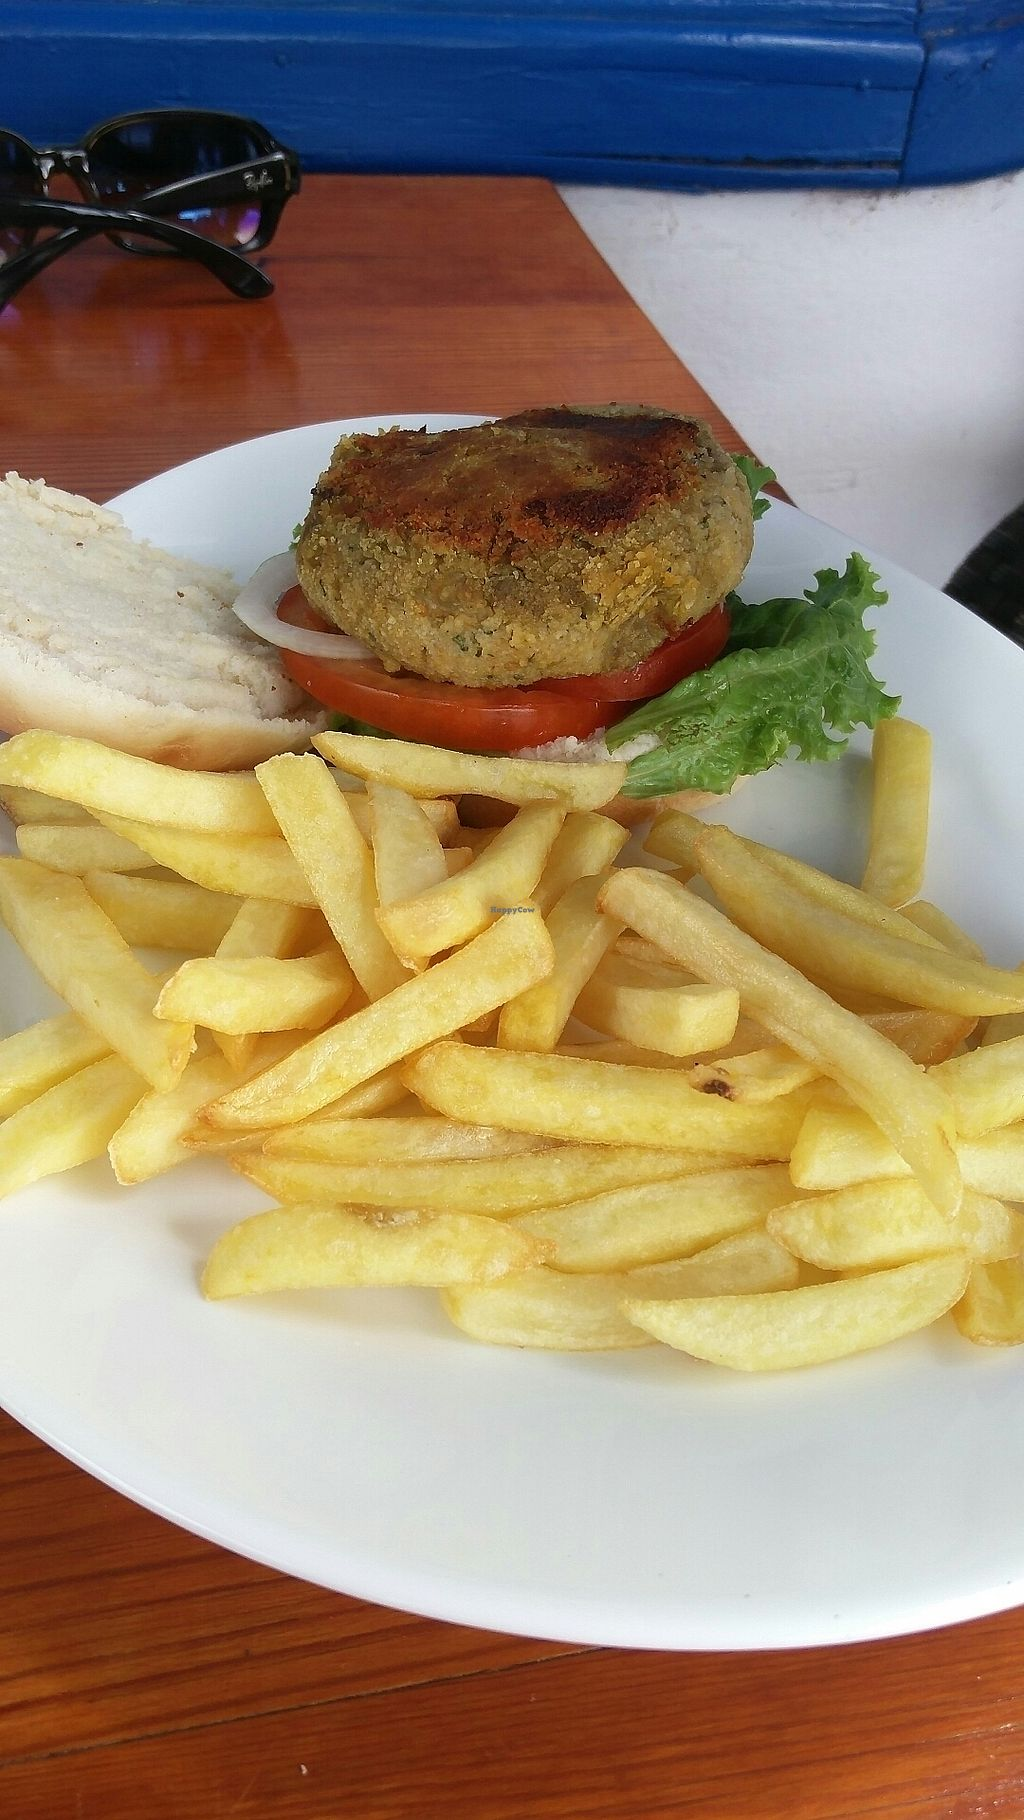 """Photo of Cafe Bonjour  by <a href=""""/members/profile/Harp"""">Harp</a> <br/>Vegan burger <br/> July 12, 2017  - <a href='/contact/abuse/image/84767/279461'>Report</a>"""